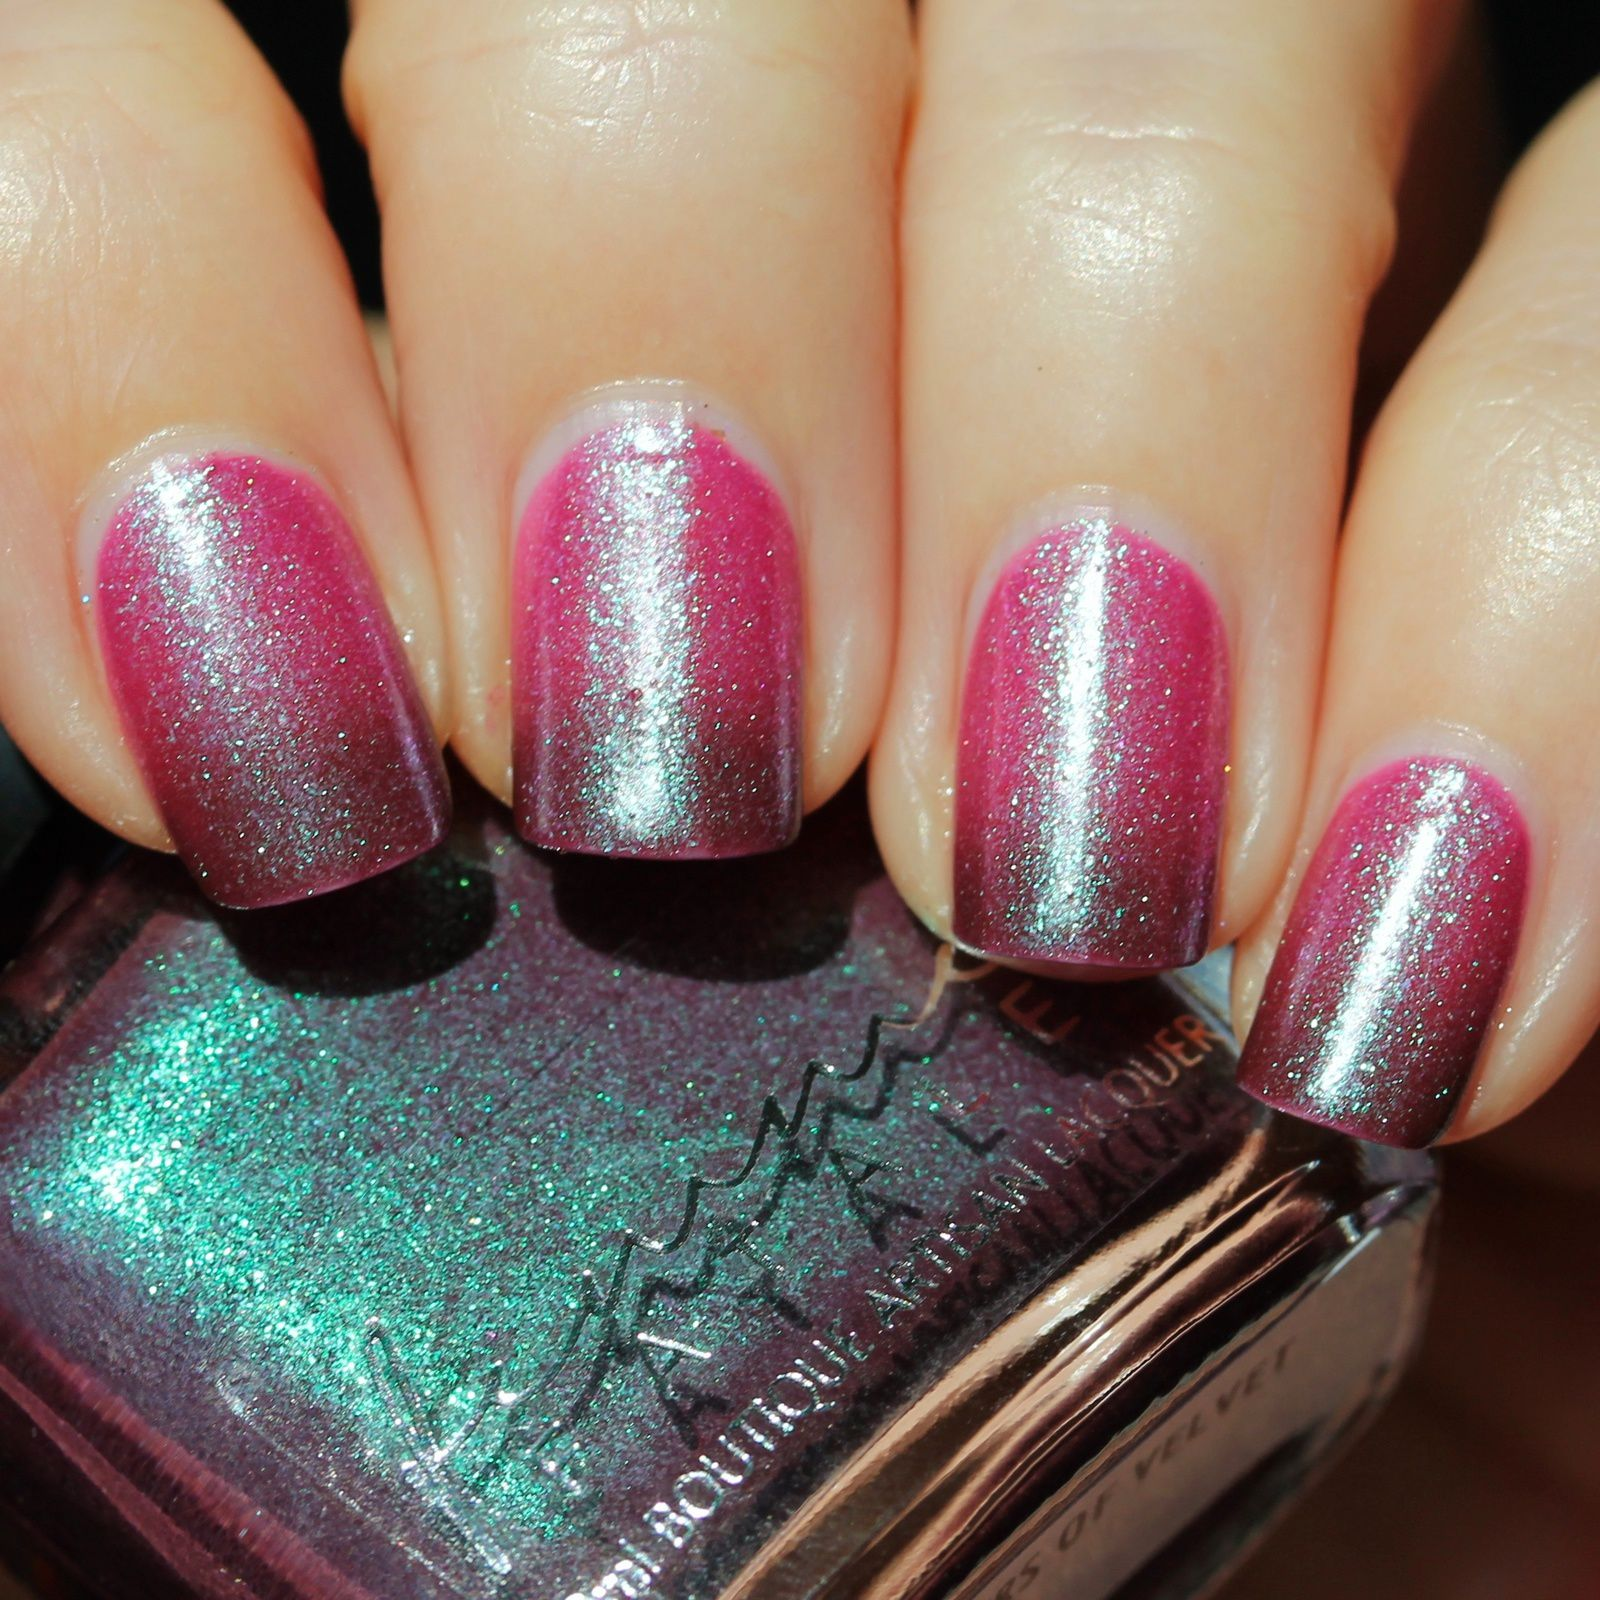 Femme Fatale Cosmetics - Whispers of Velvet (2 coats, no top coat)